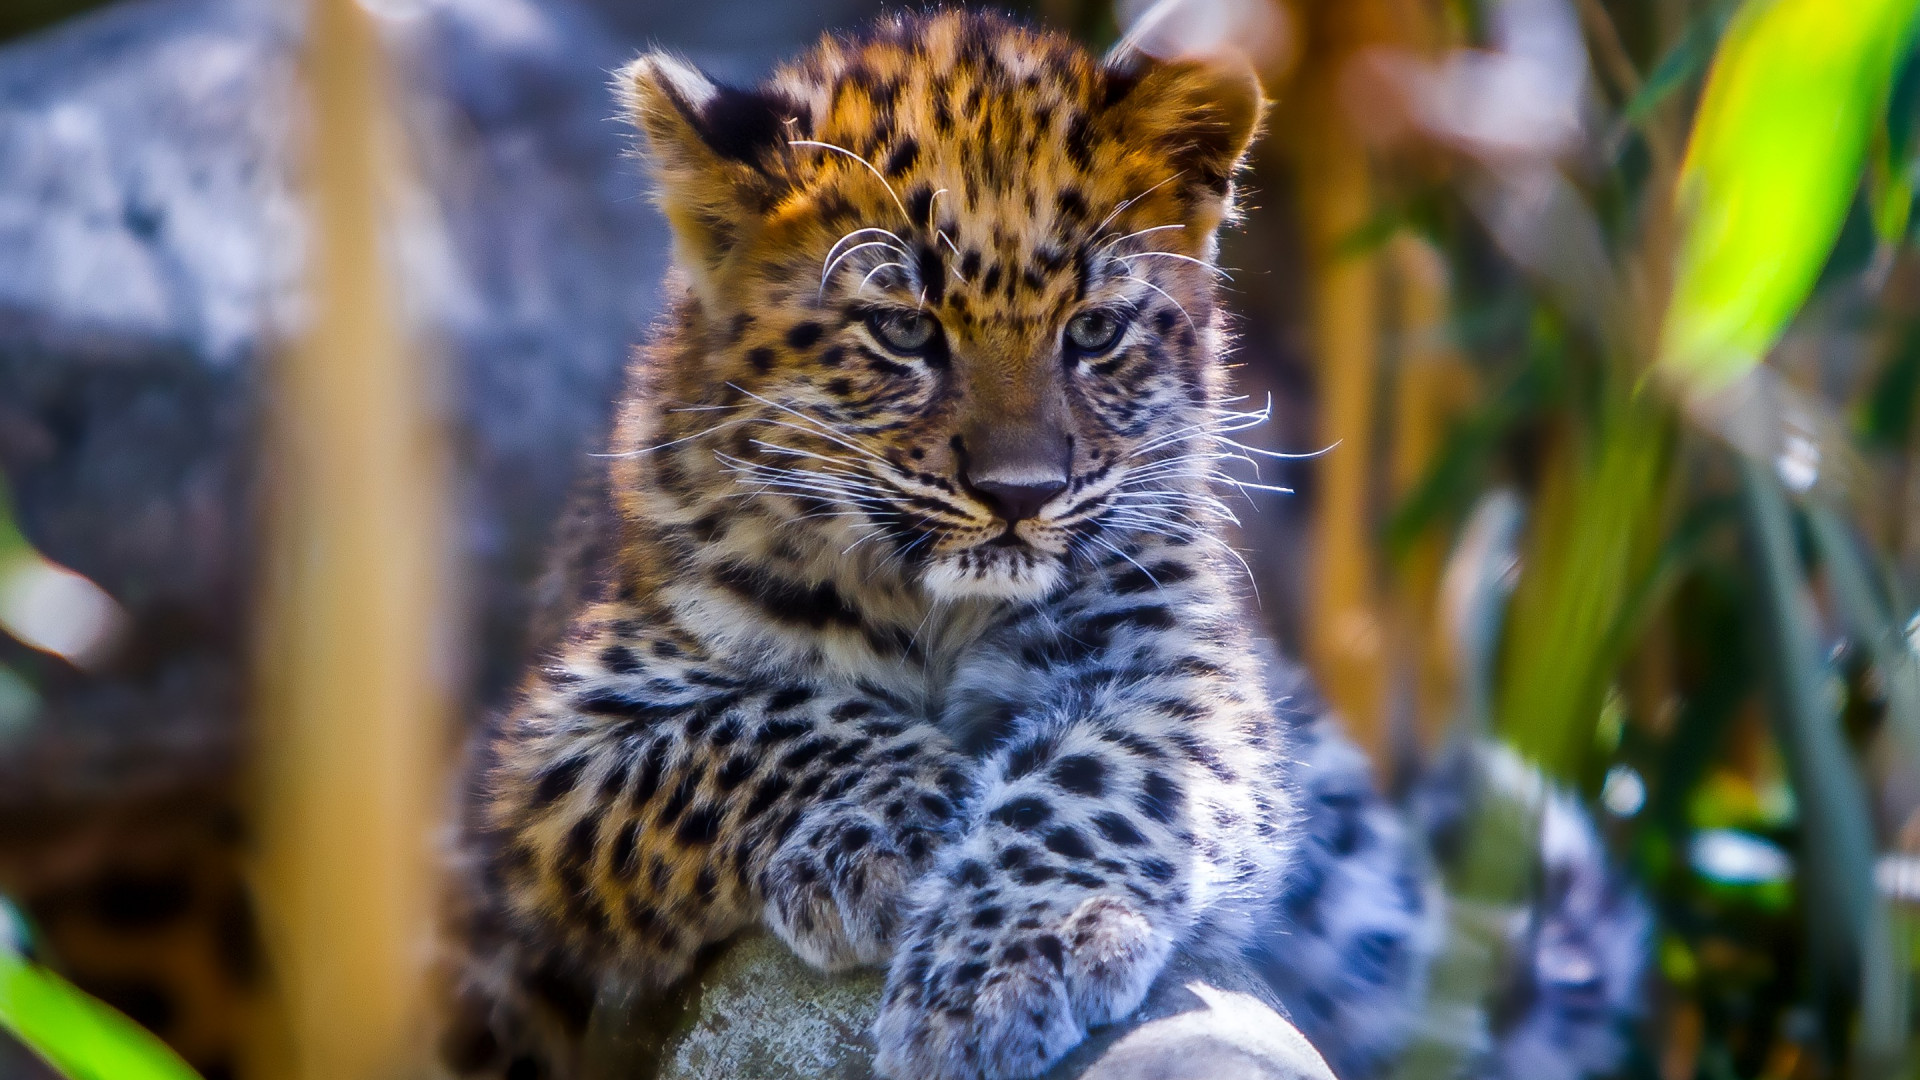 Leopard cub | 1920x1080 wallpaper